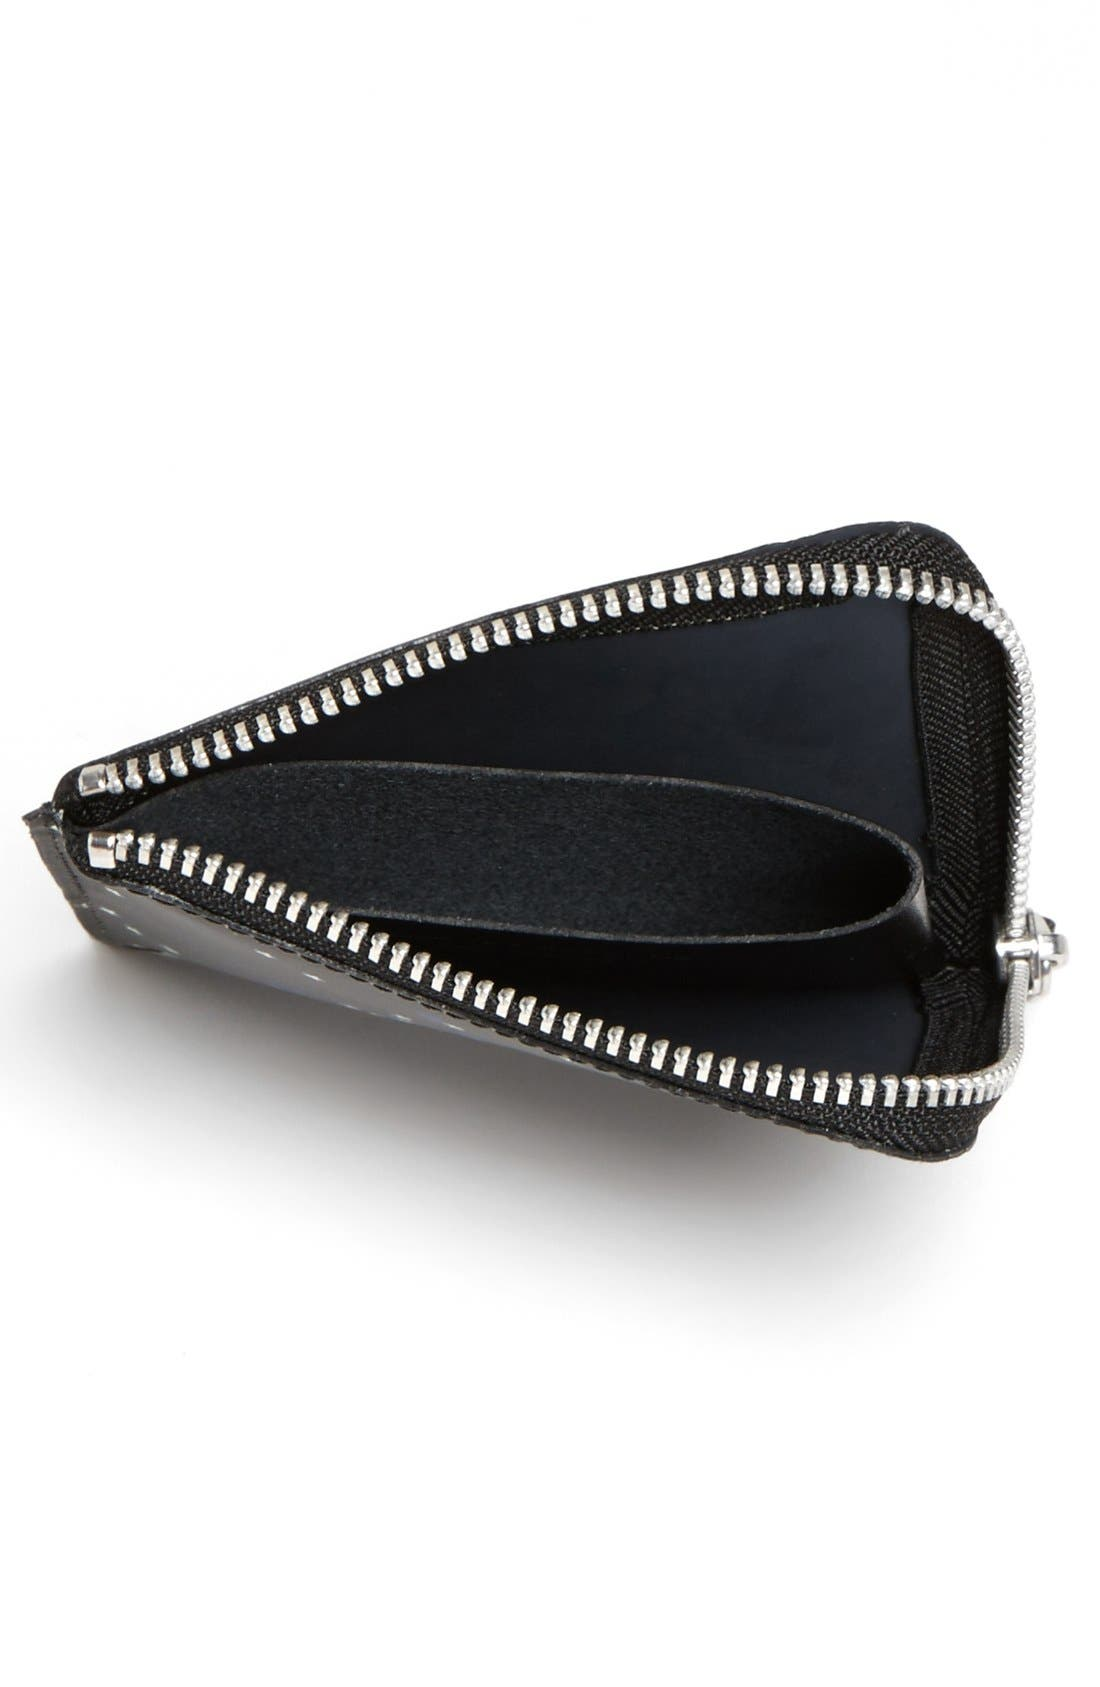 Alternate Image 2  - Comme des Garçons 'Bright Star - Small' French Wallet